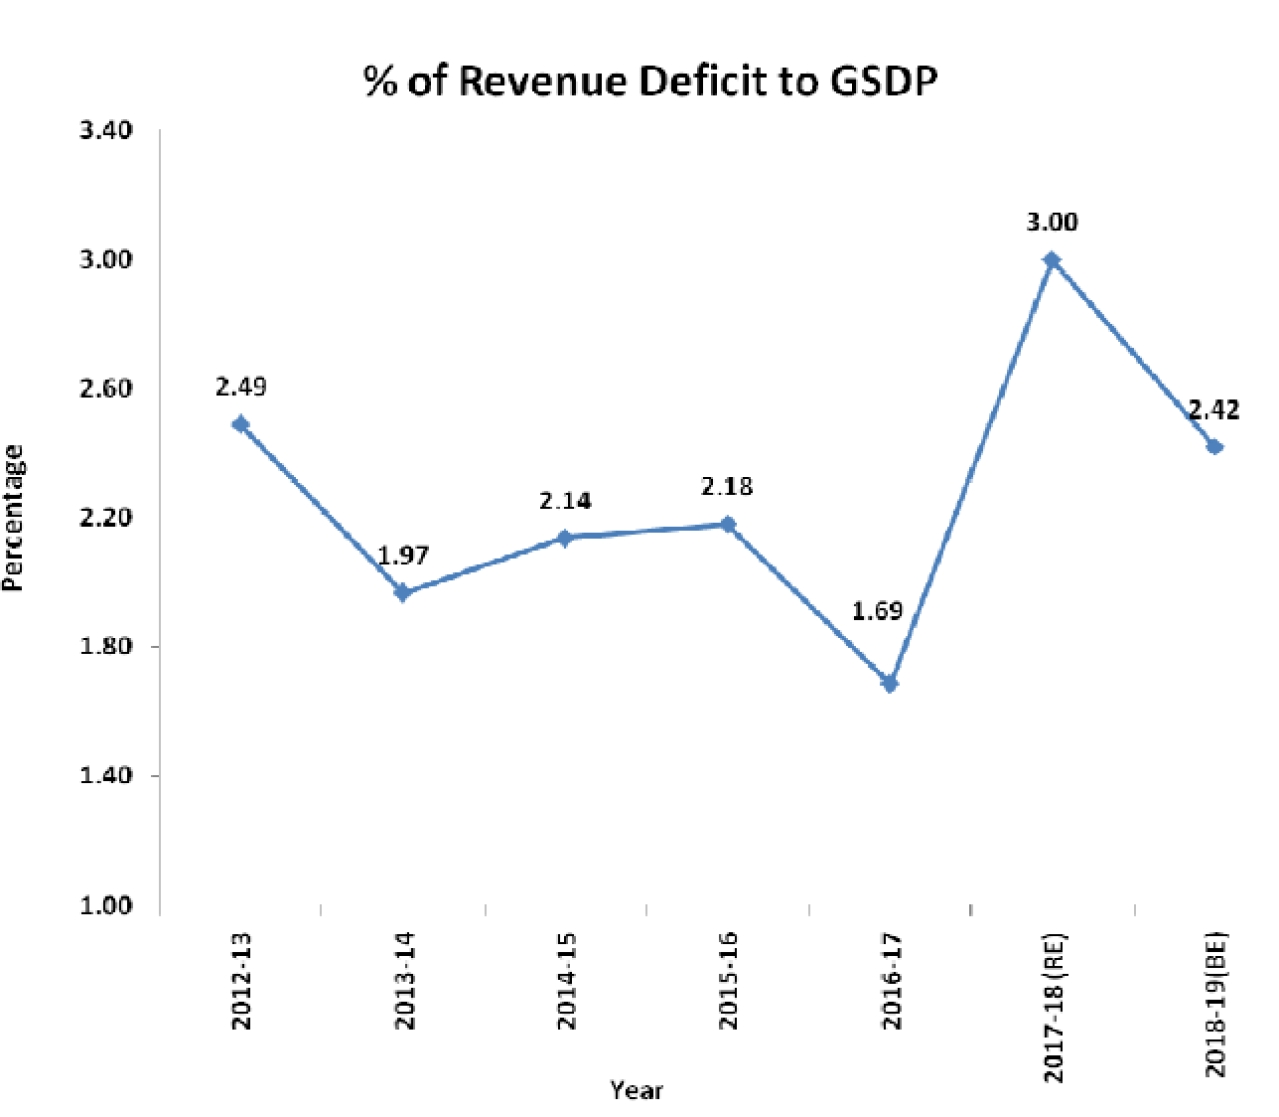 Revenue deficit to GSDP